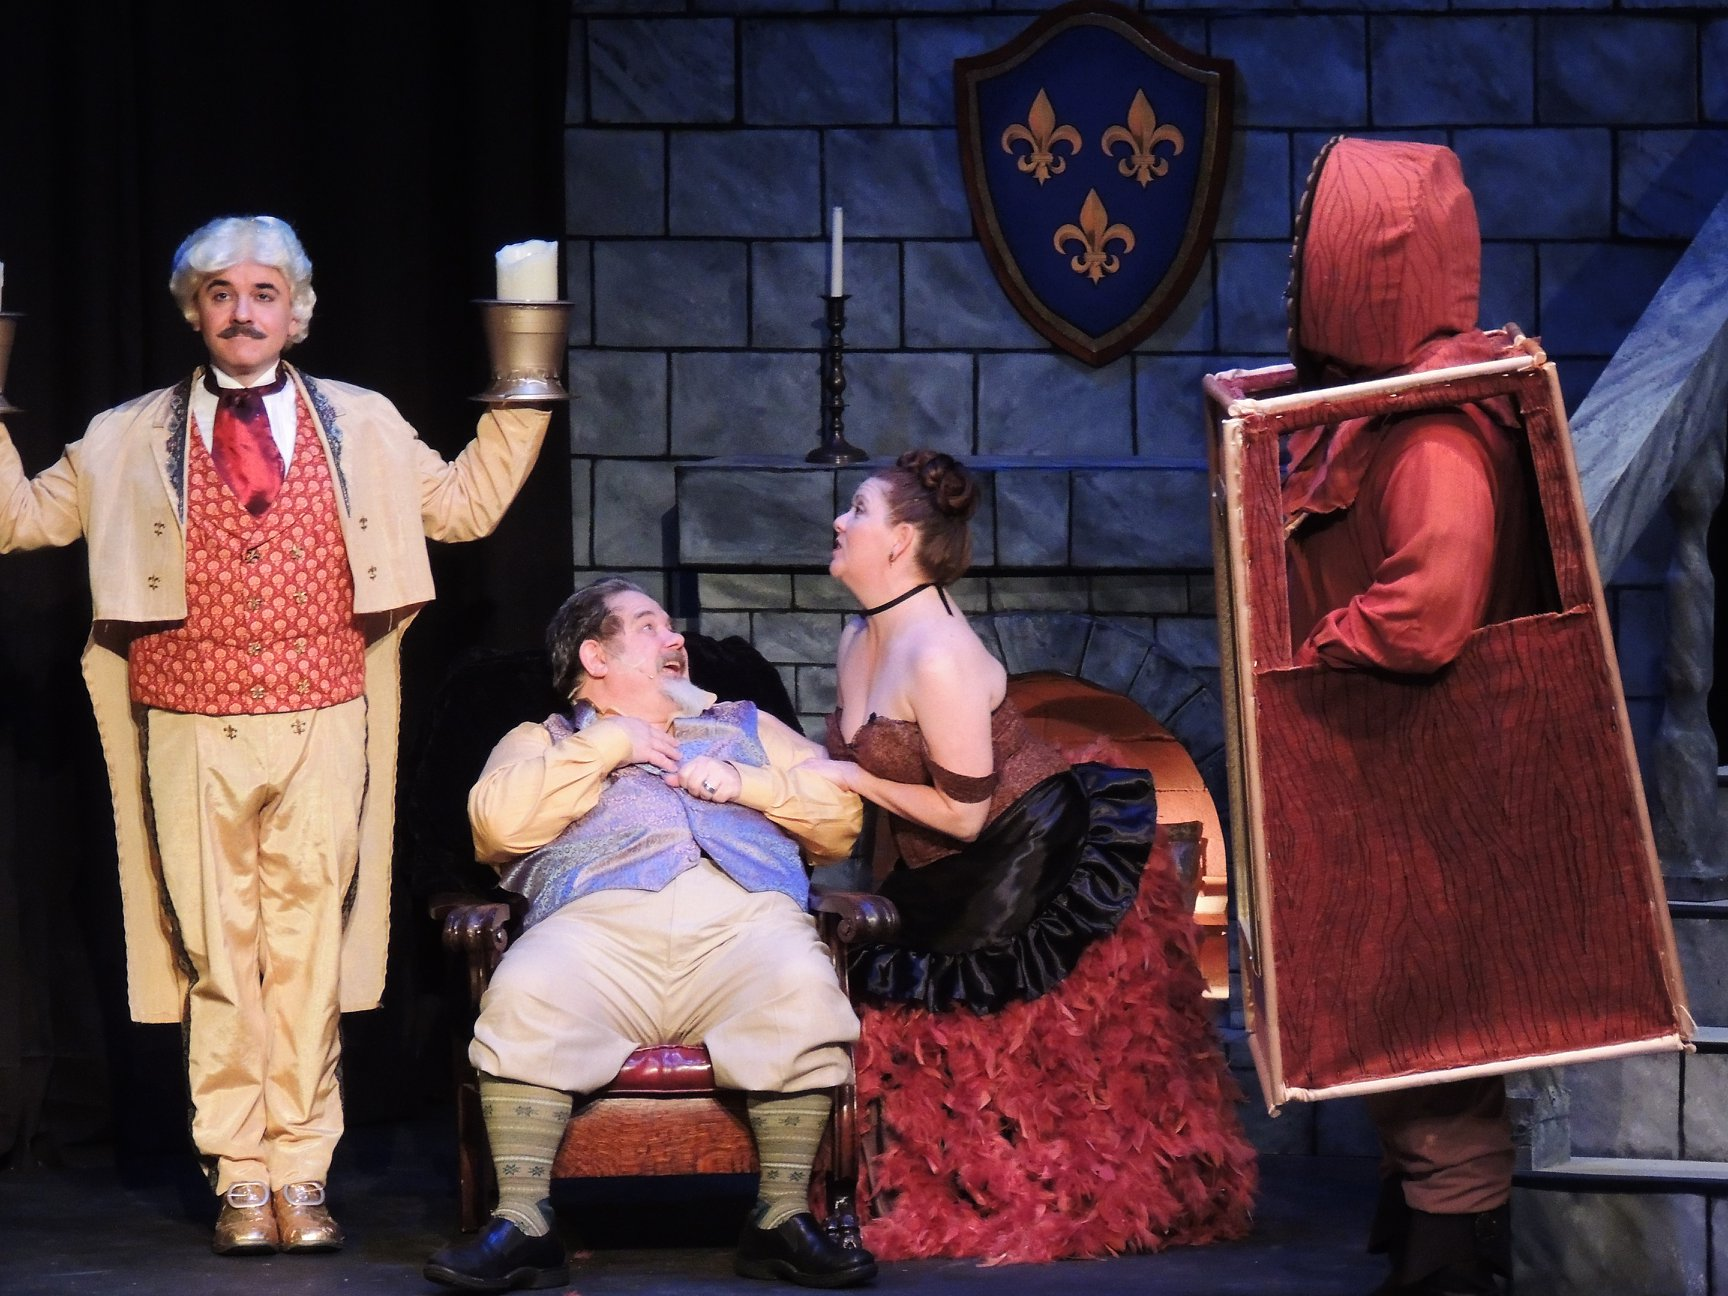 Lumiere, Babette and Cogsworth make Maurice feel at home in the castle.